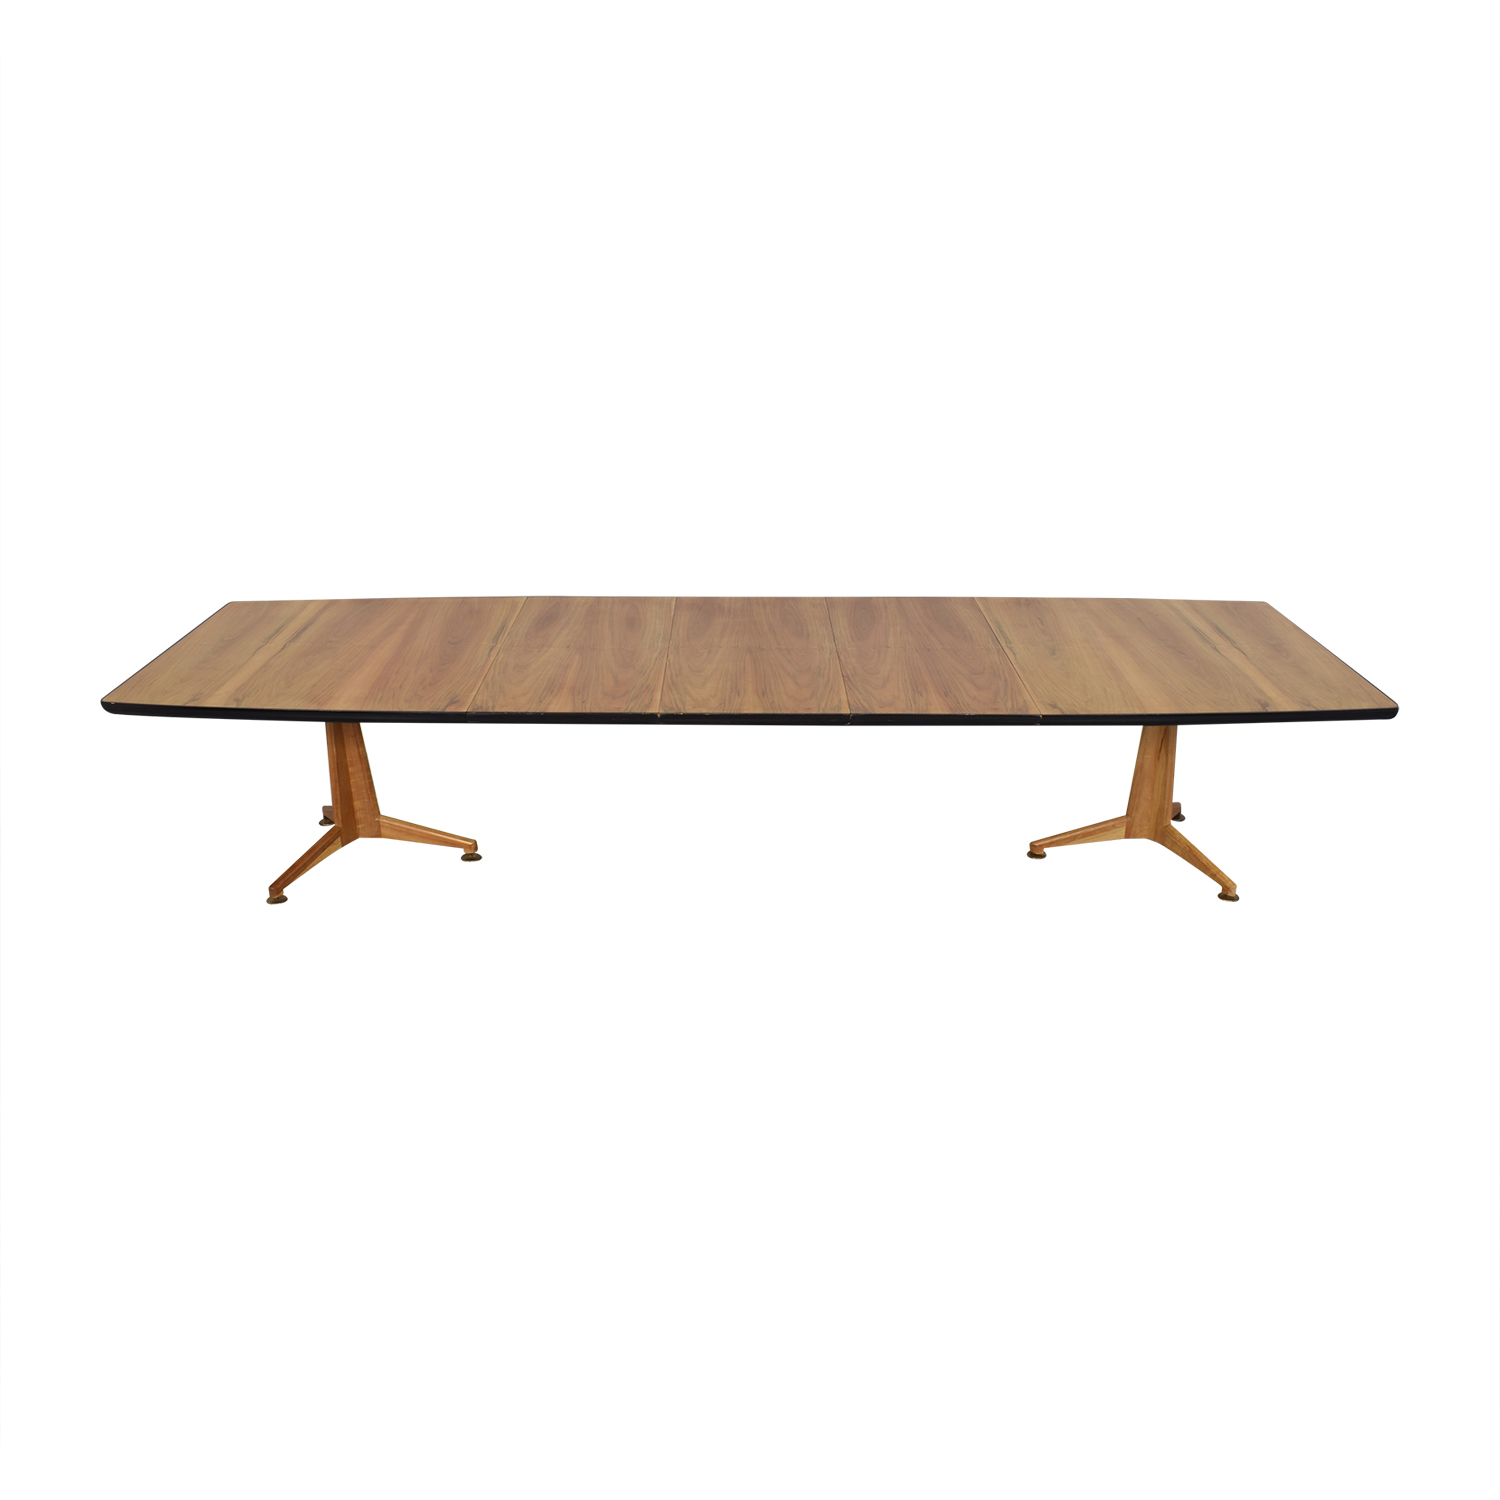 Johnson Furniture Johnson Furniture Mid Century Modern Extendable Dining Table Dinner Tables